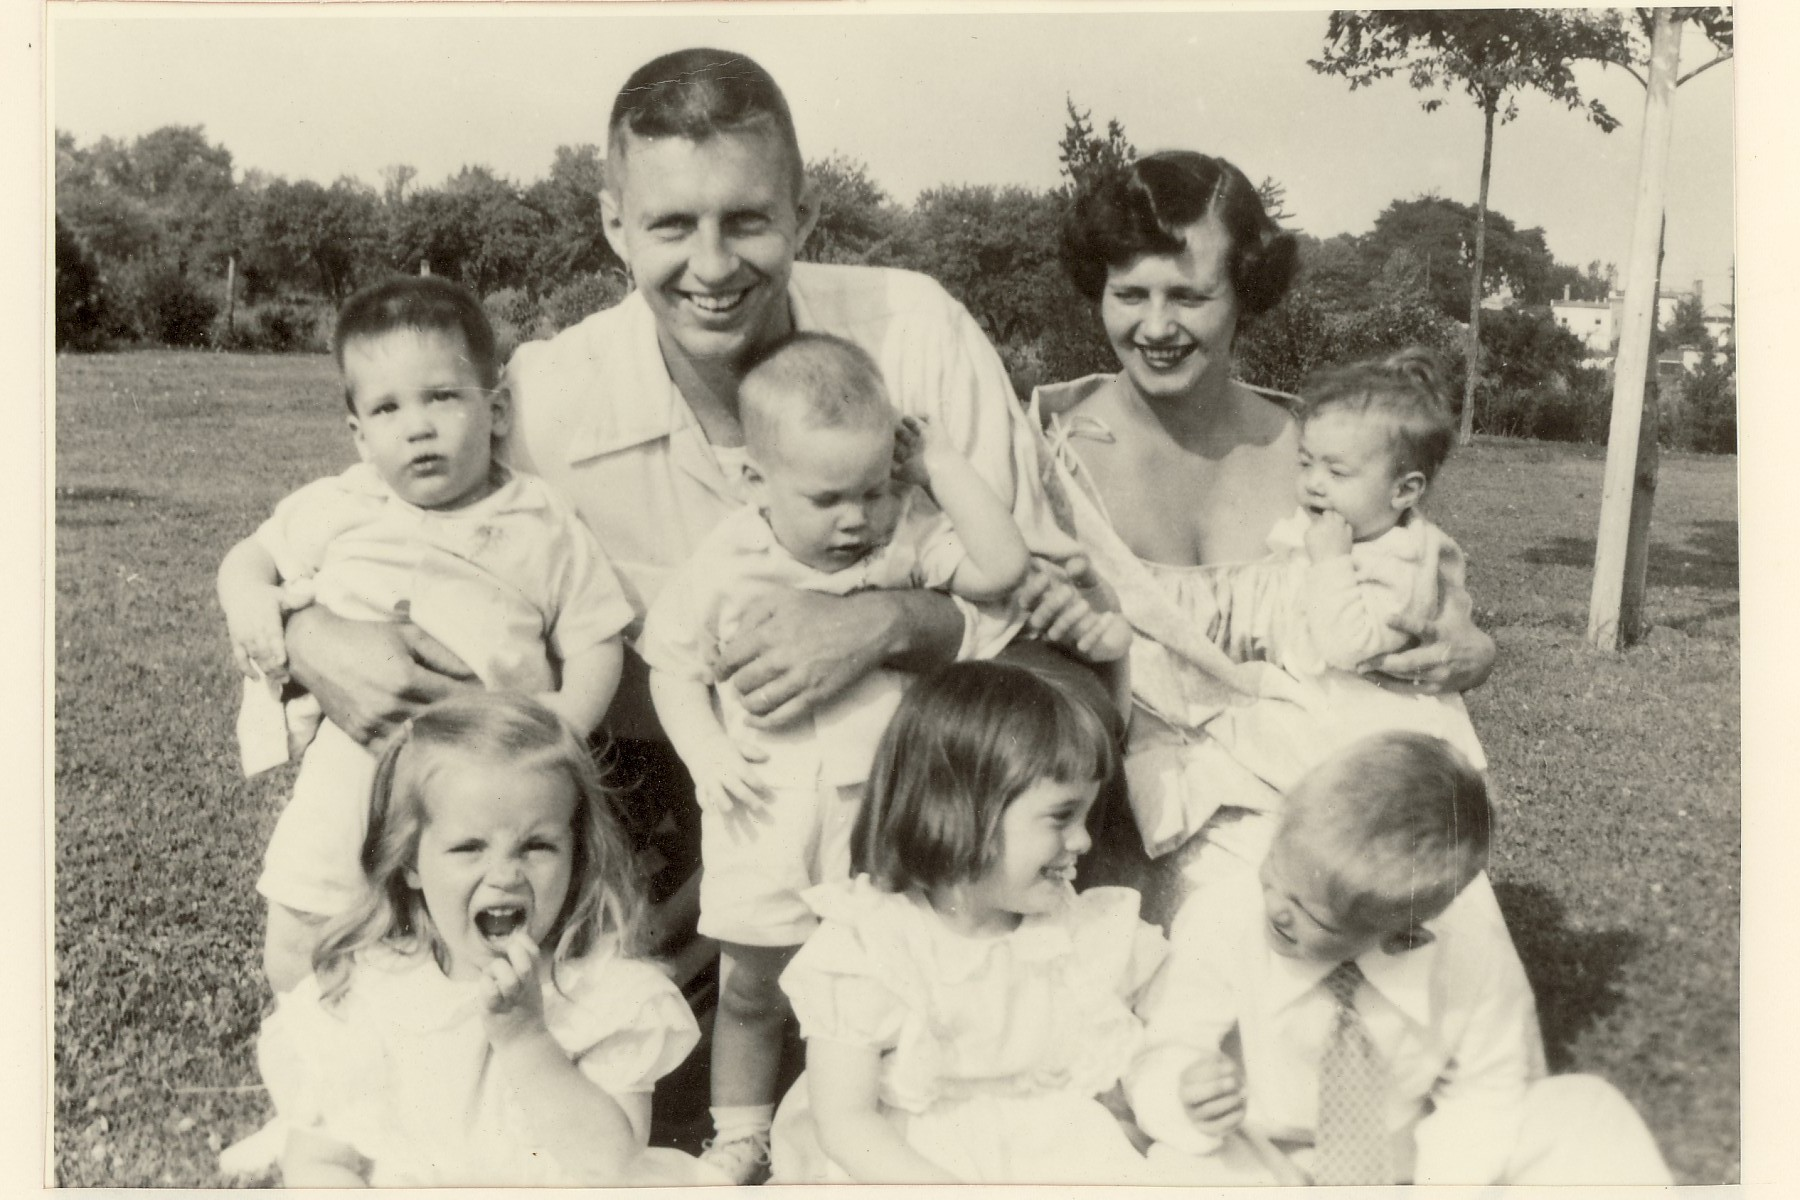 Pat Johnson surrounded by her 6 children. Fun fact: She gave brith to all of them in just 4 years and 8 months!